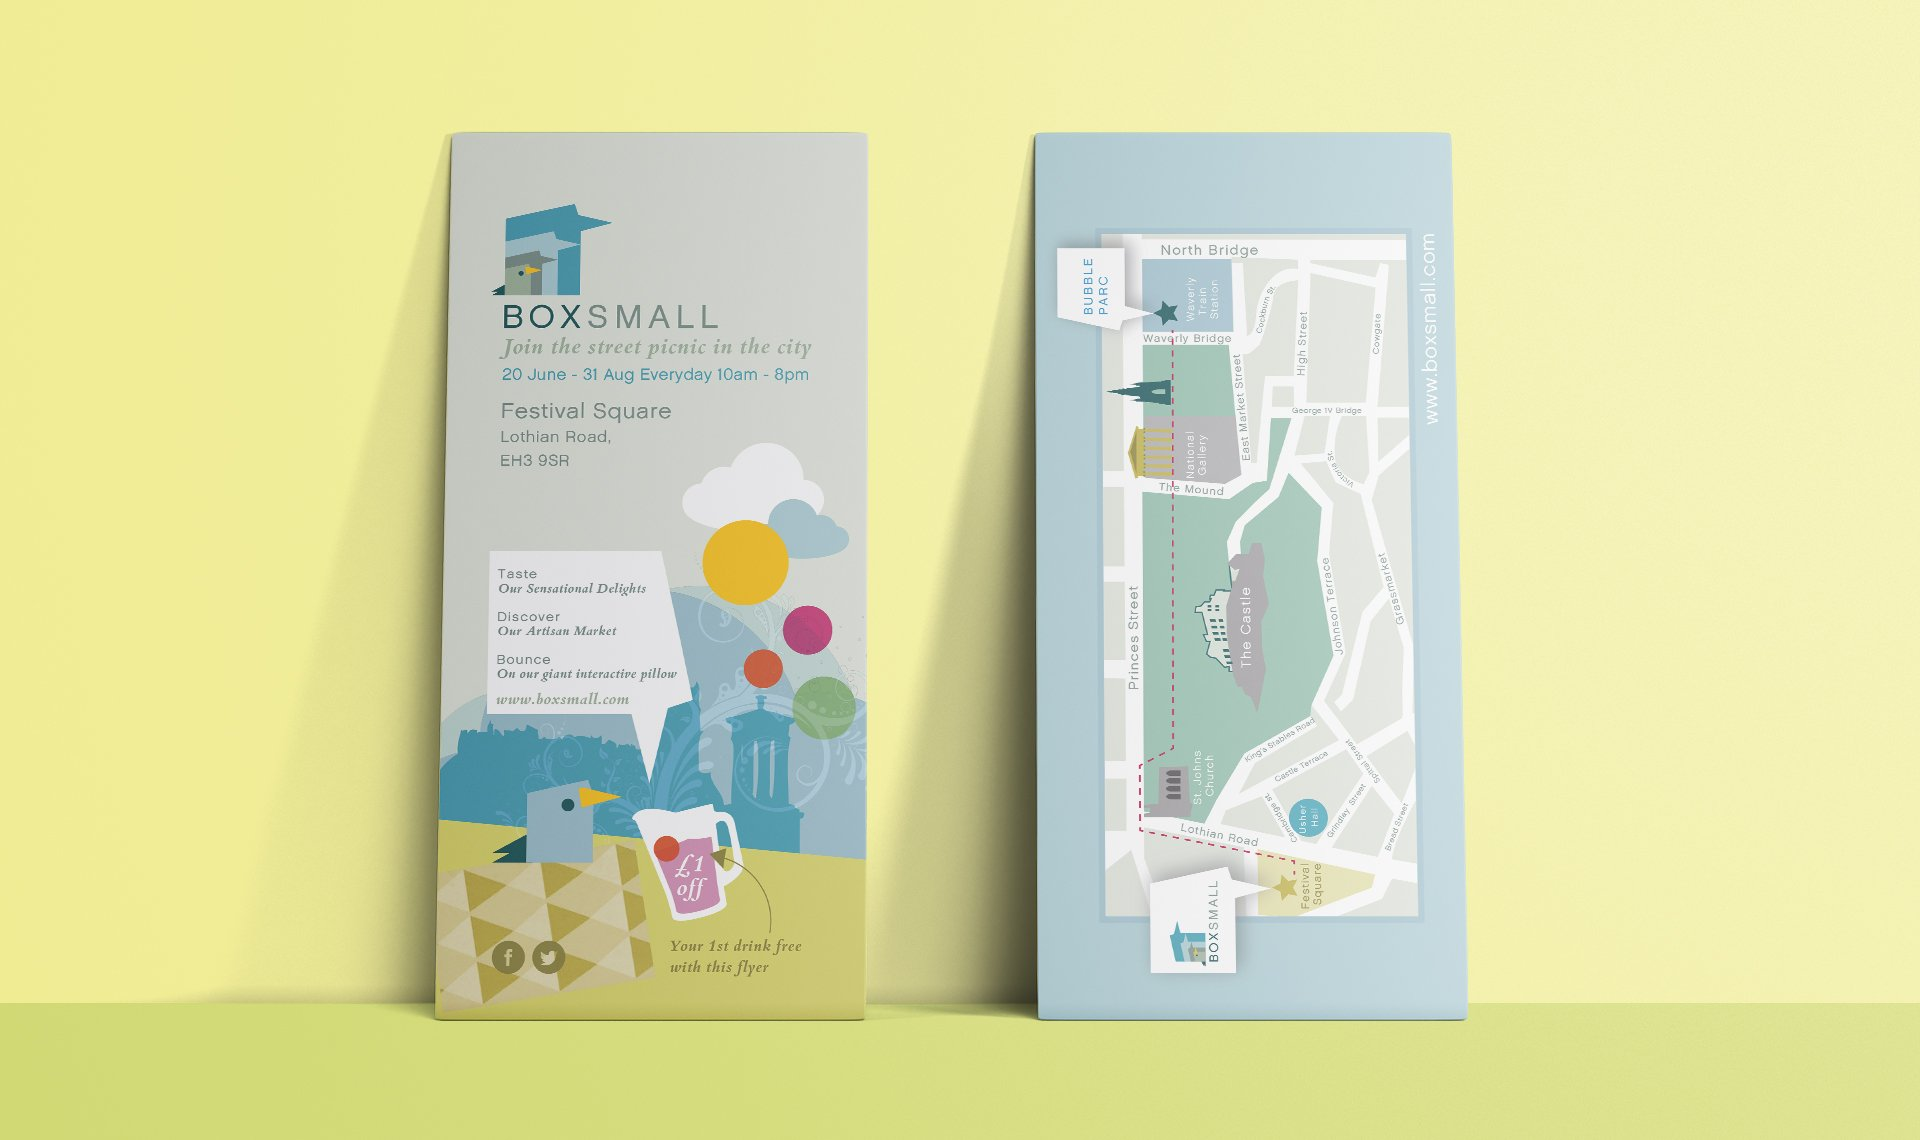 BoxSmall Leaflets with map of location